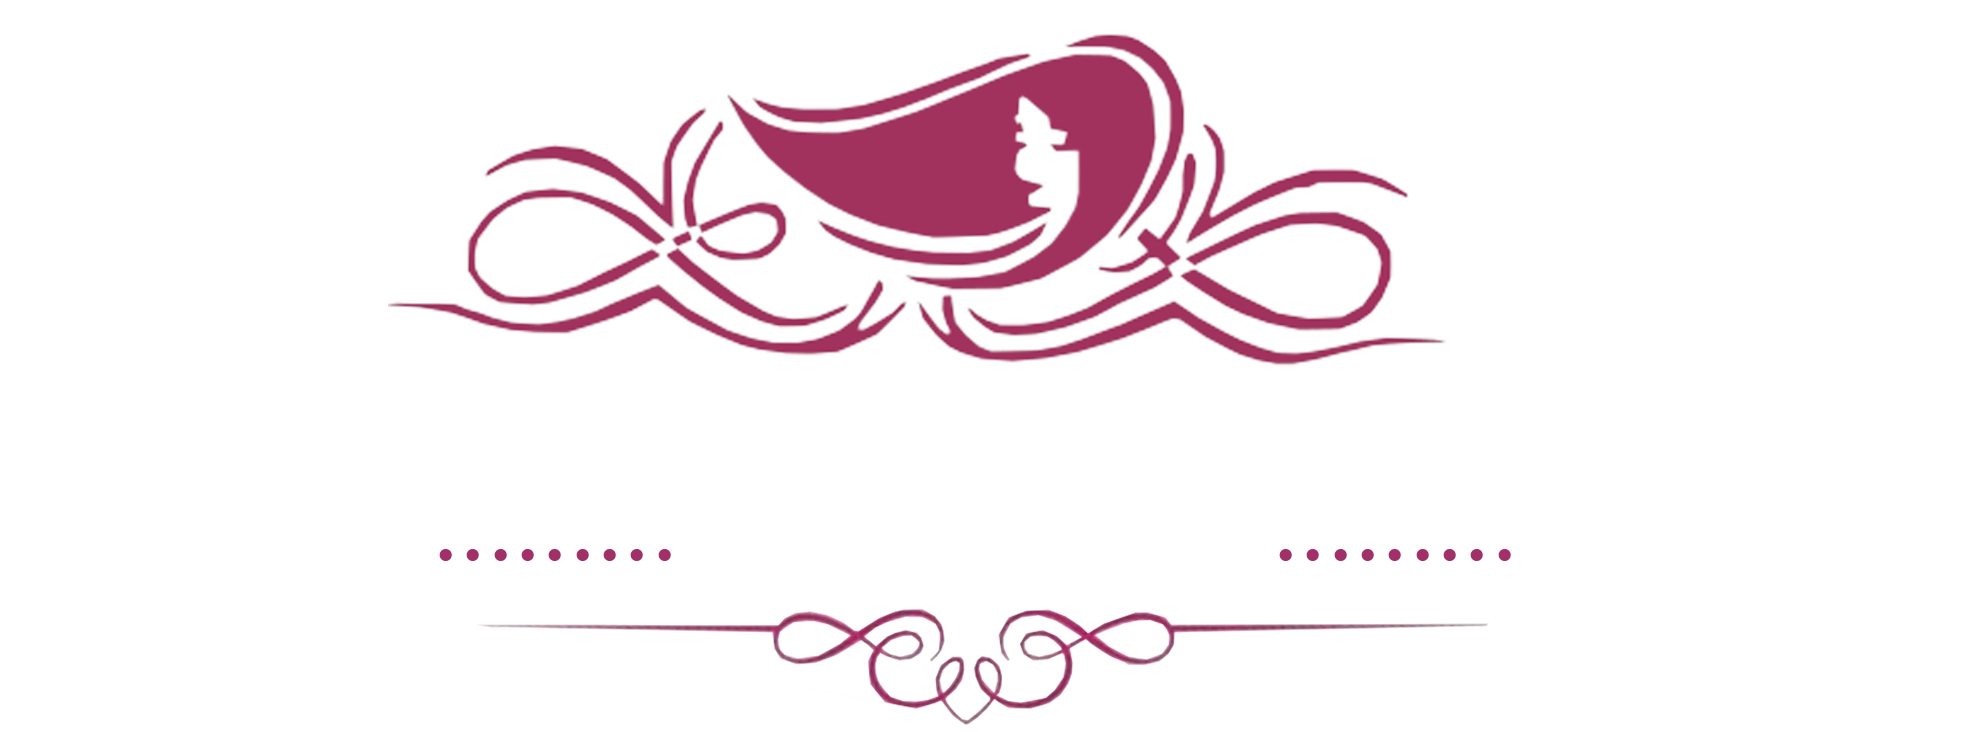 Sarhap Hair Line - Hair salon and lace wig specialist